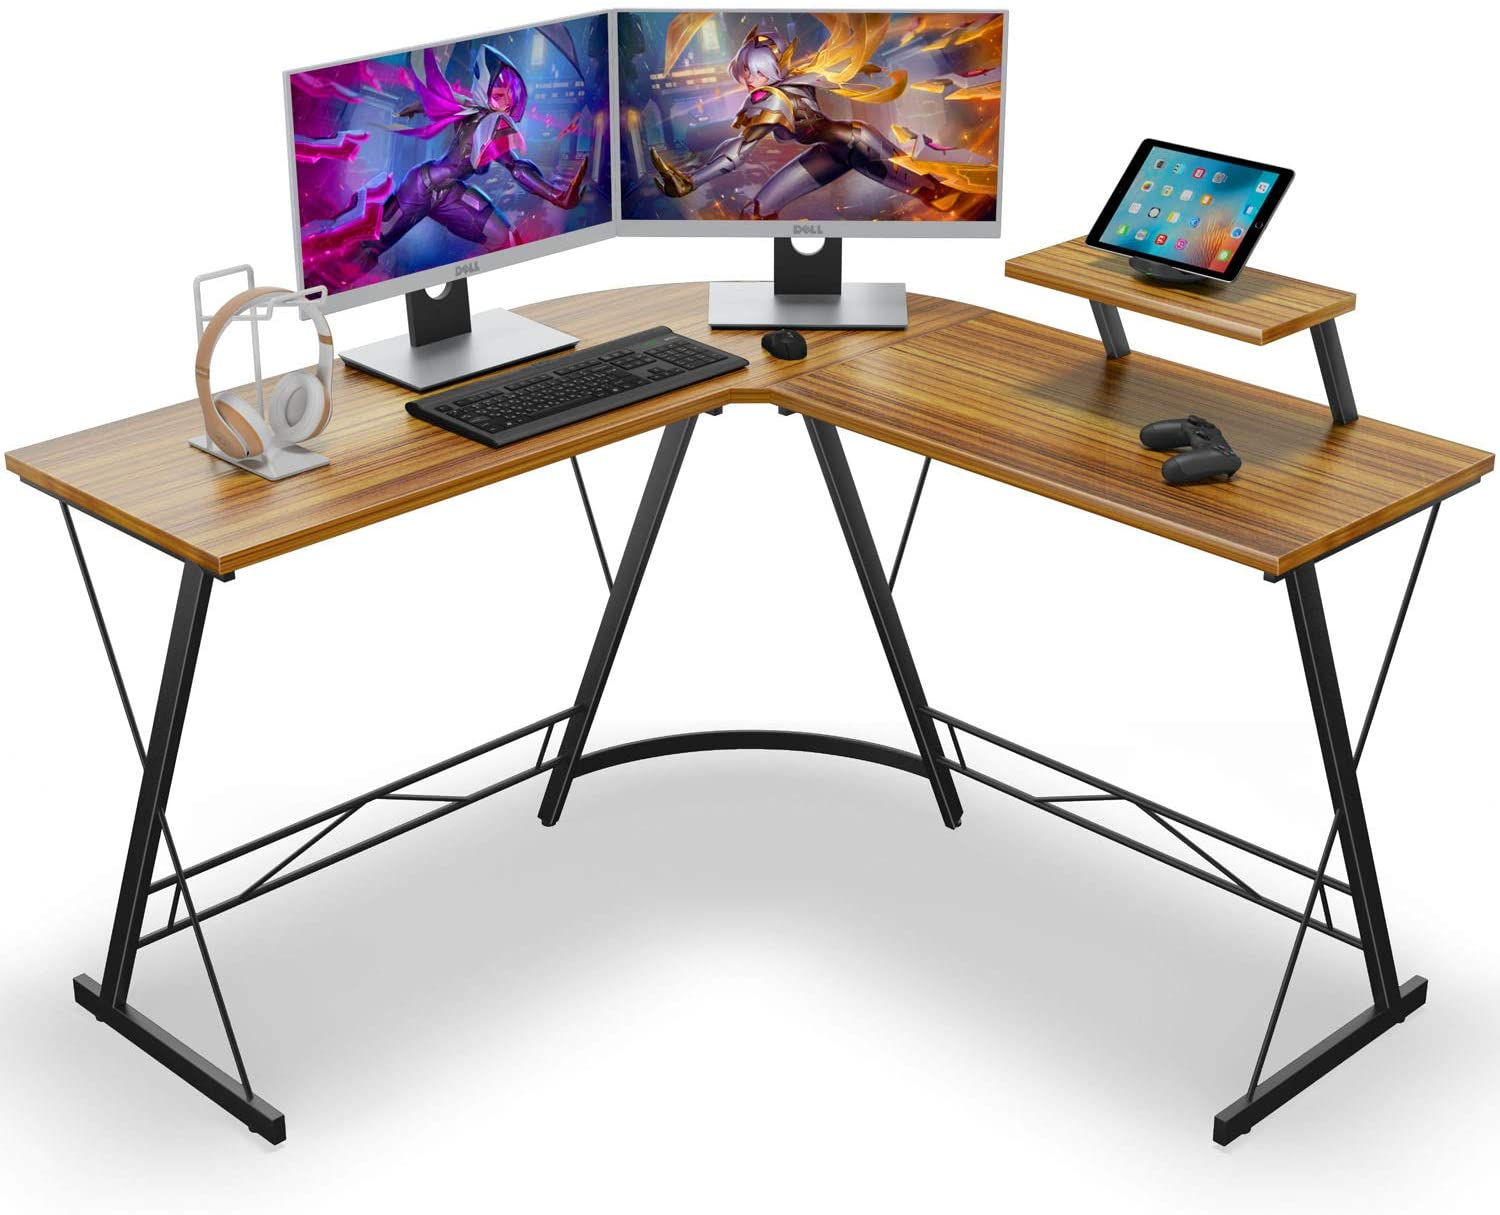 L Shaped Desk Home Office Desk with Round Corner Computer Desk with Large Monitor Stand Desk Workstation,Sandalwood